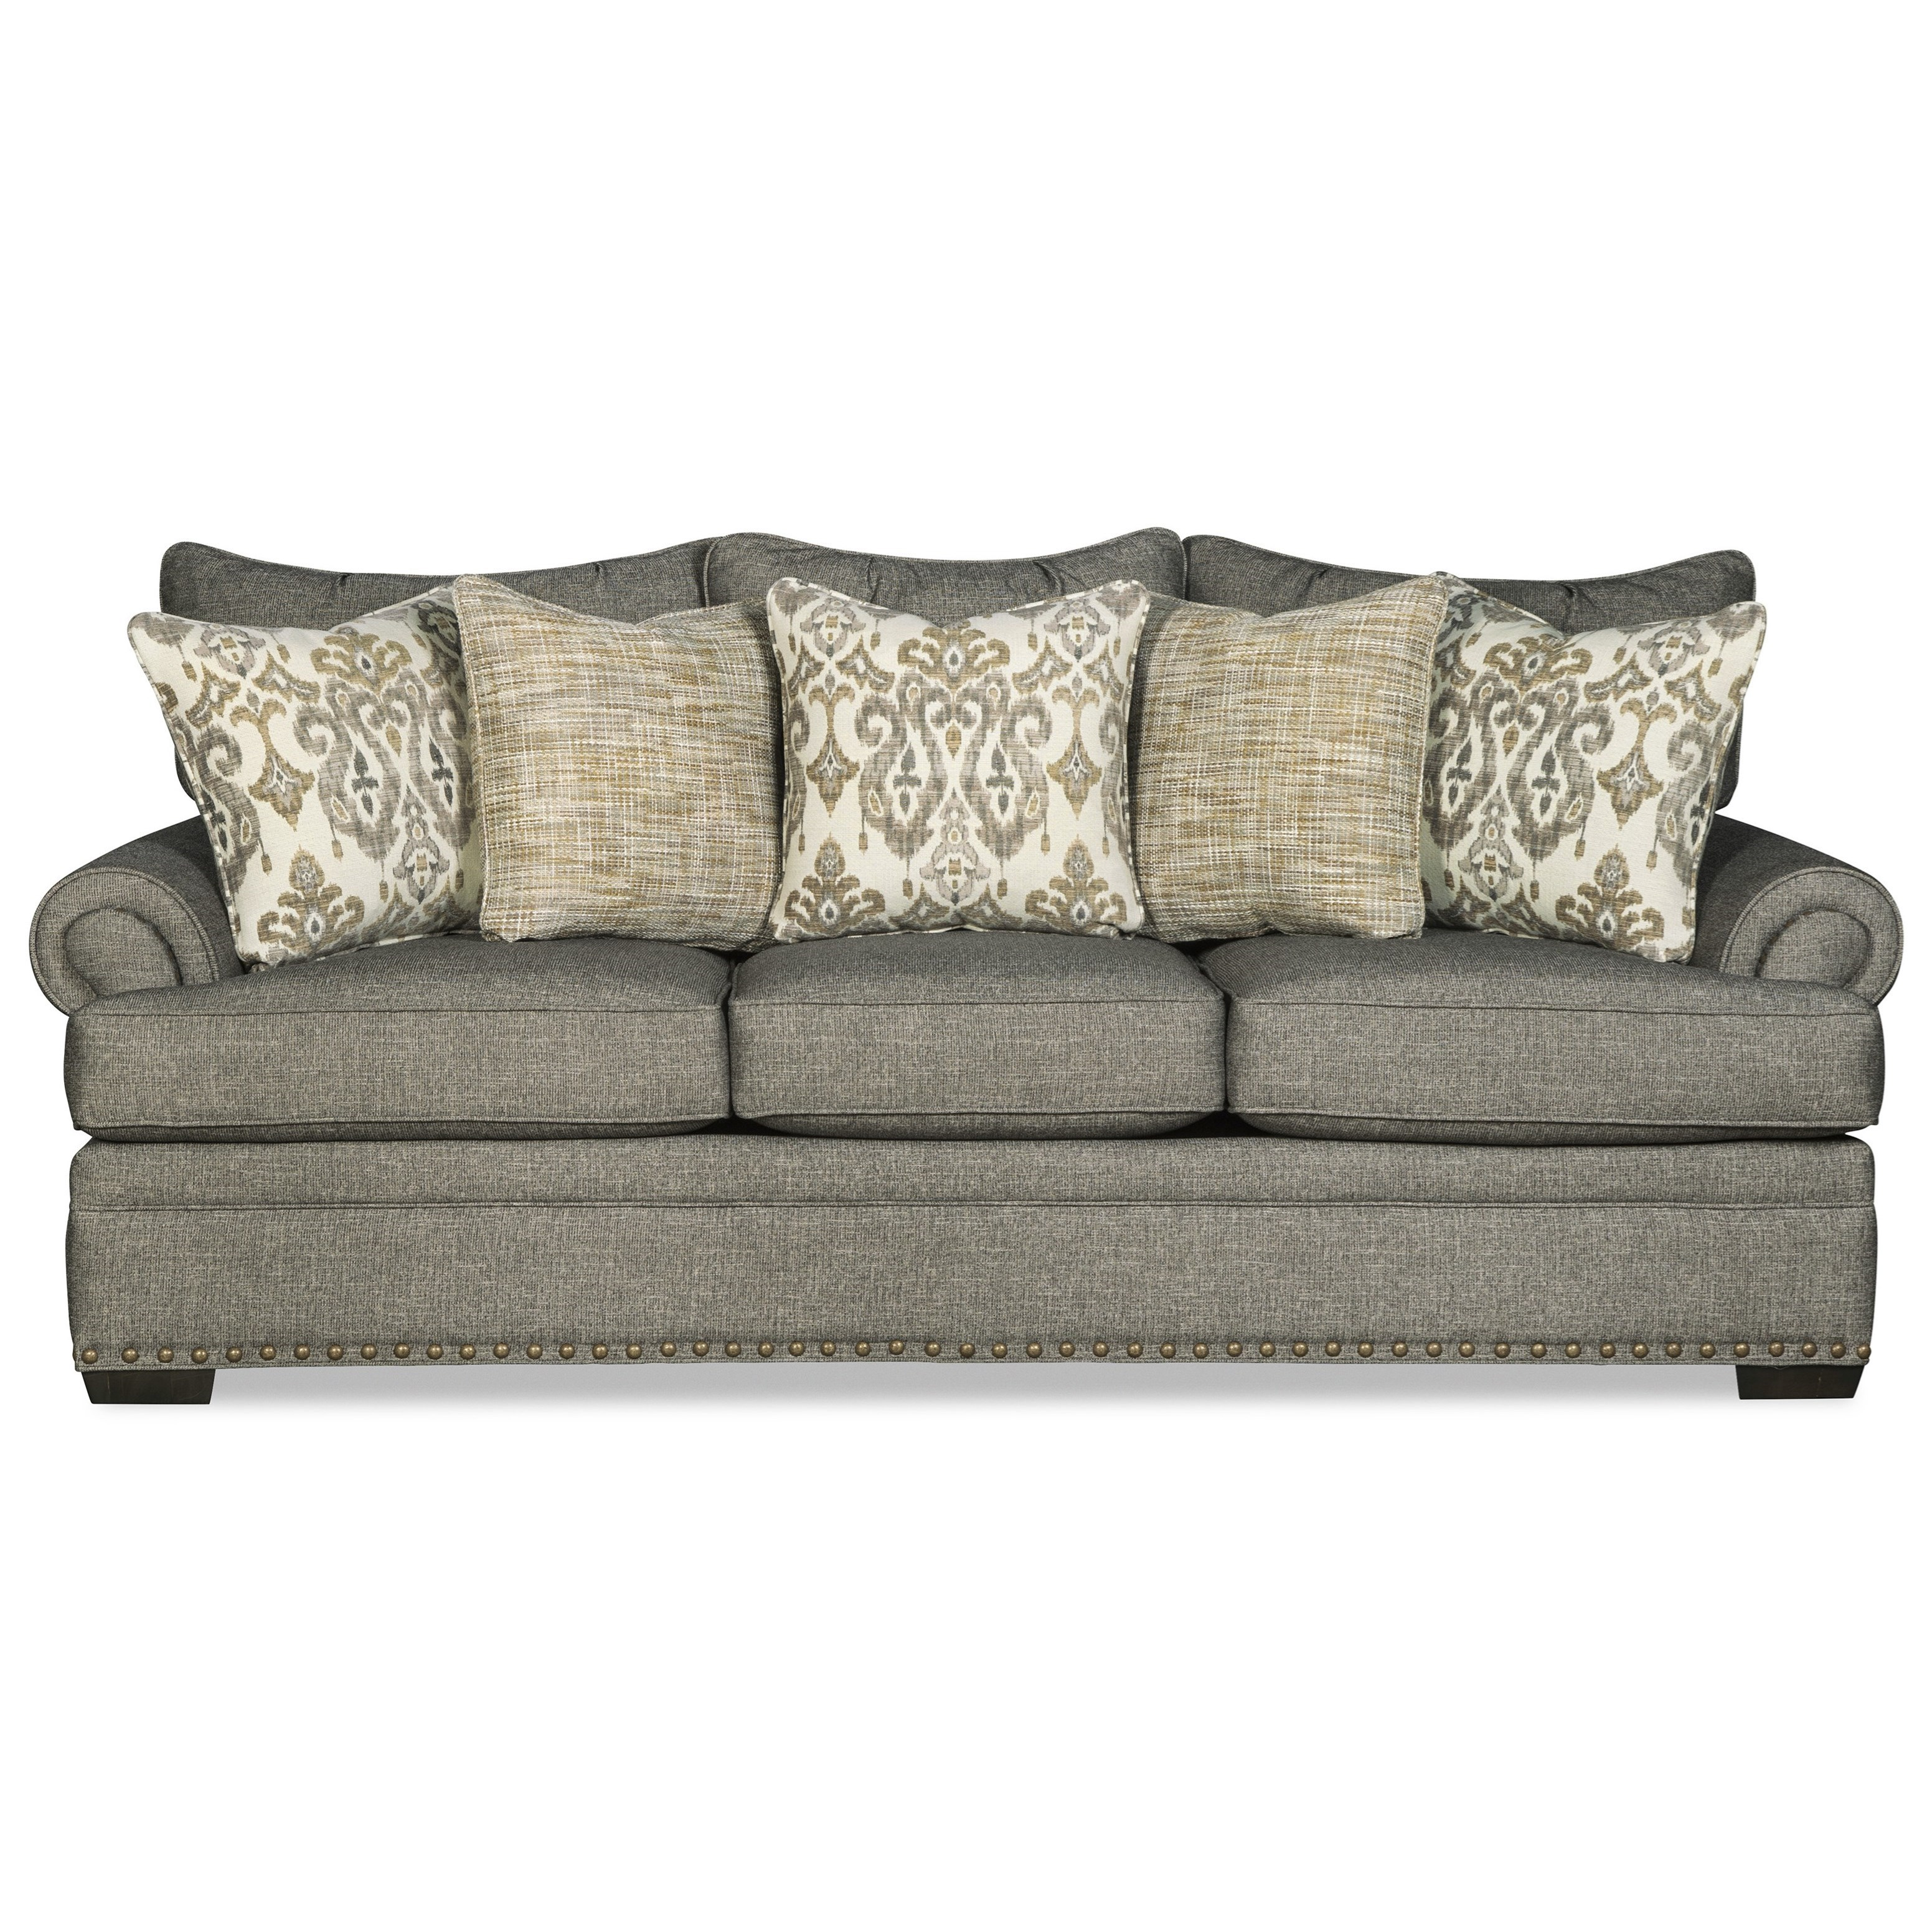 701650 Sofa by Craftmaster at Lindy's Furniture Company